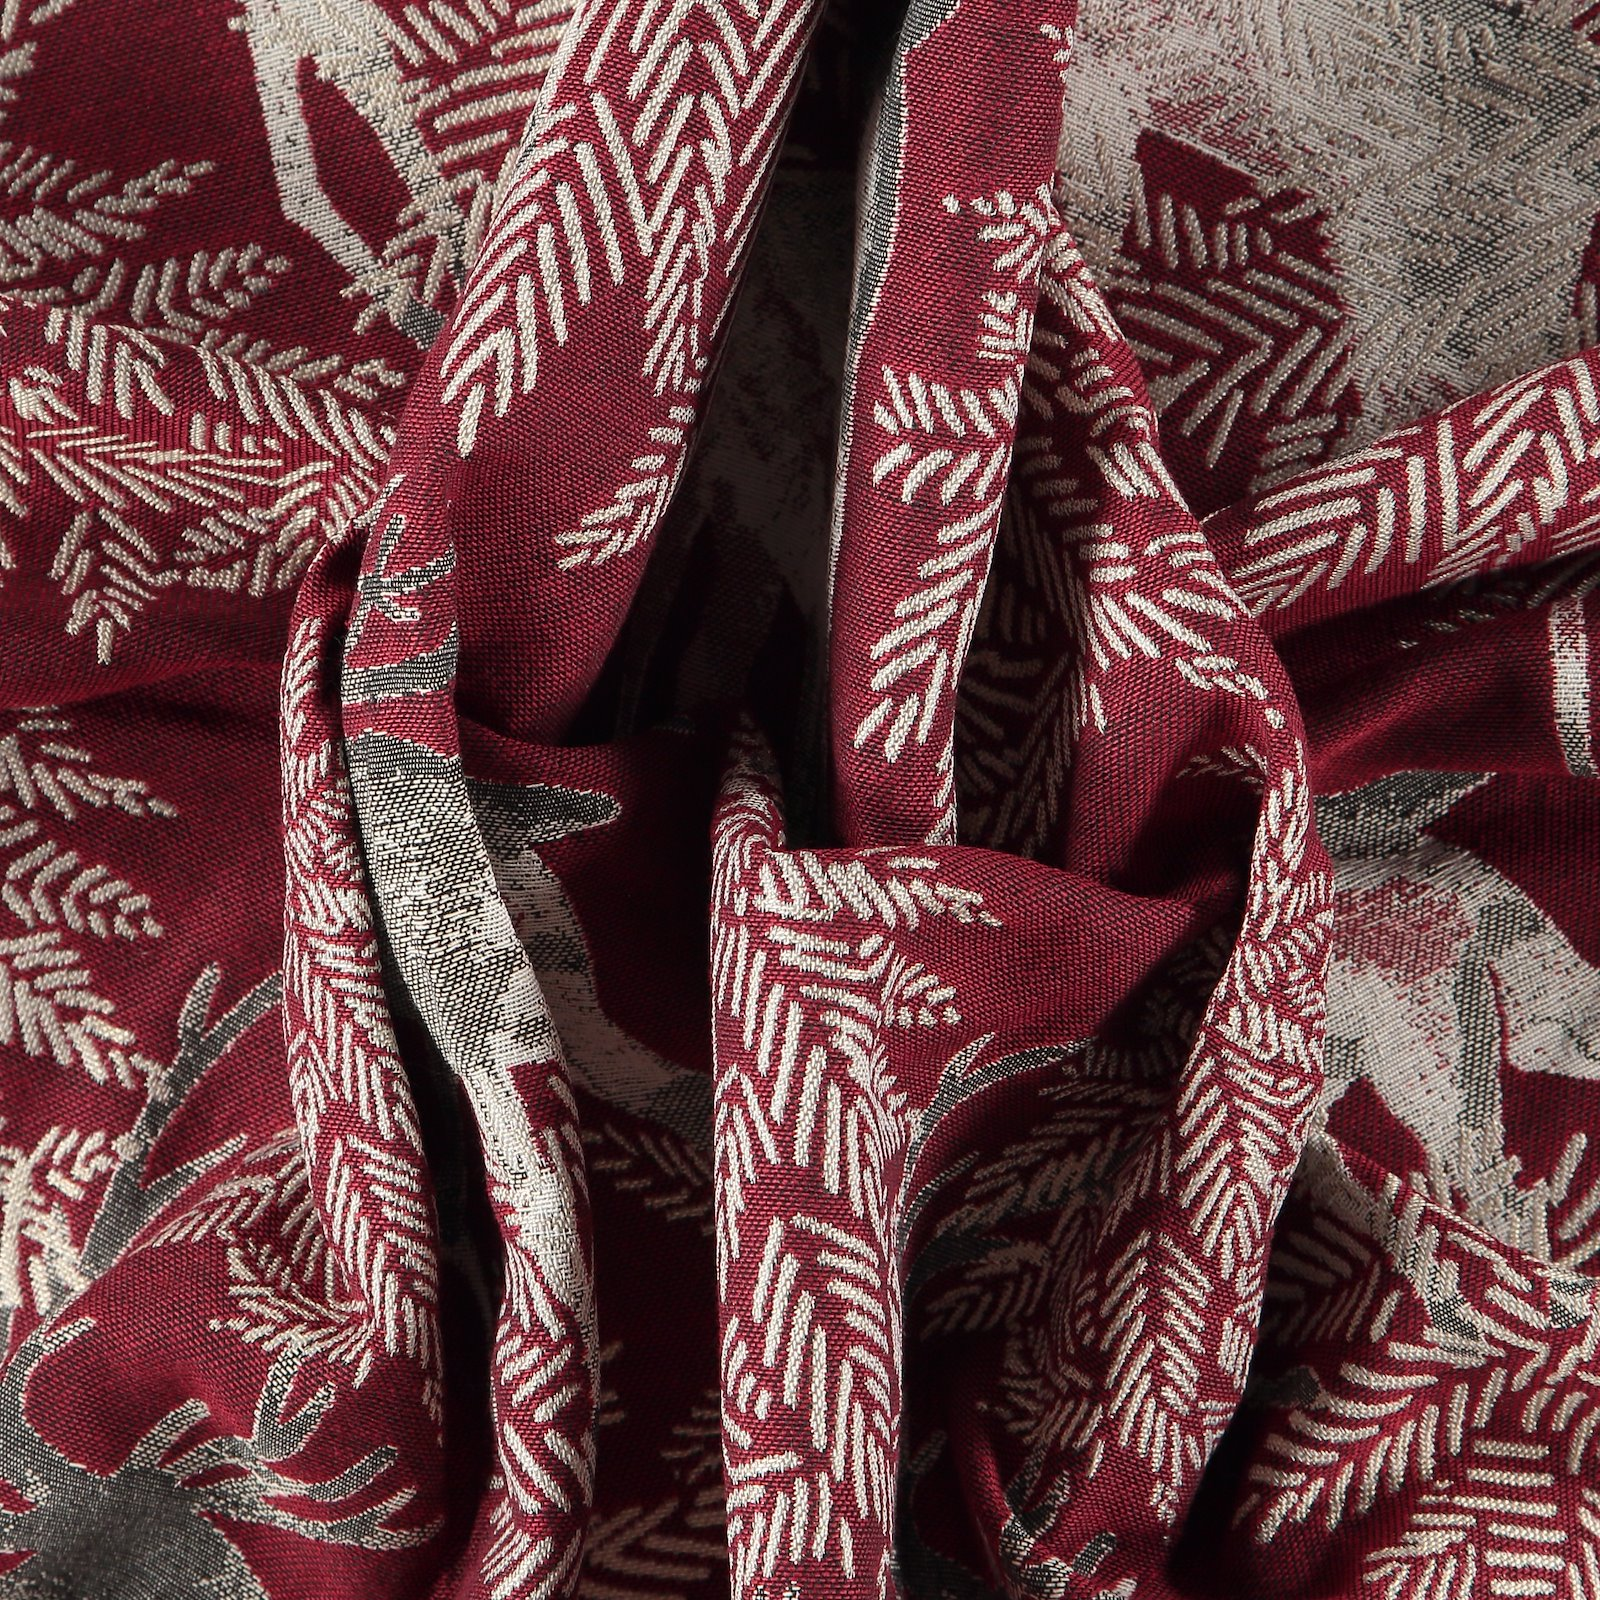 Jacquard red with deer and branches